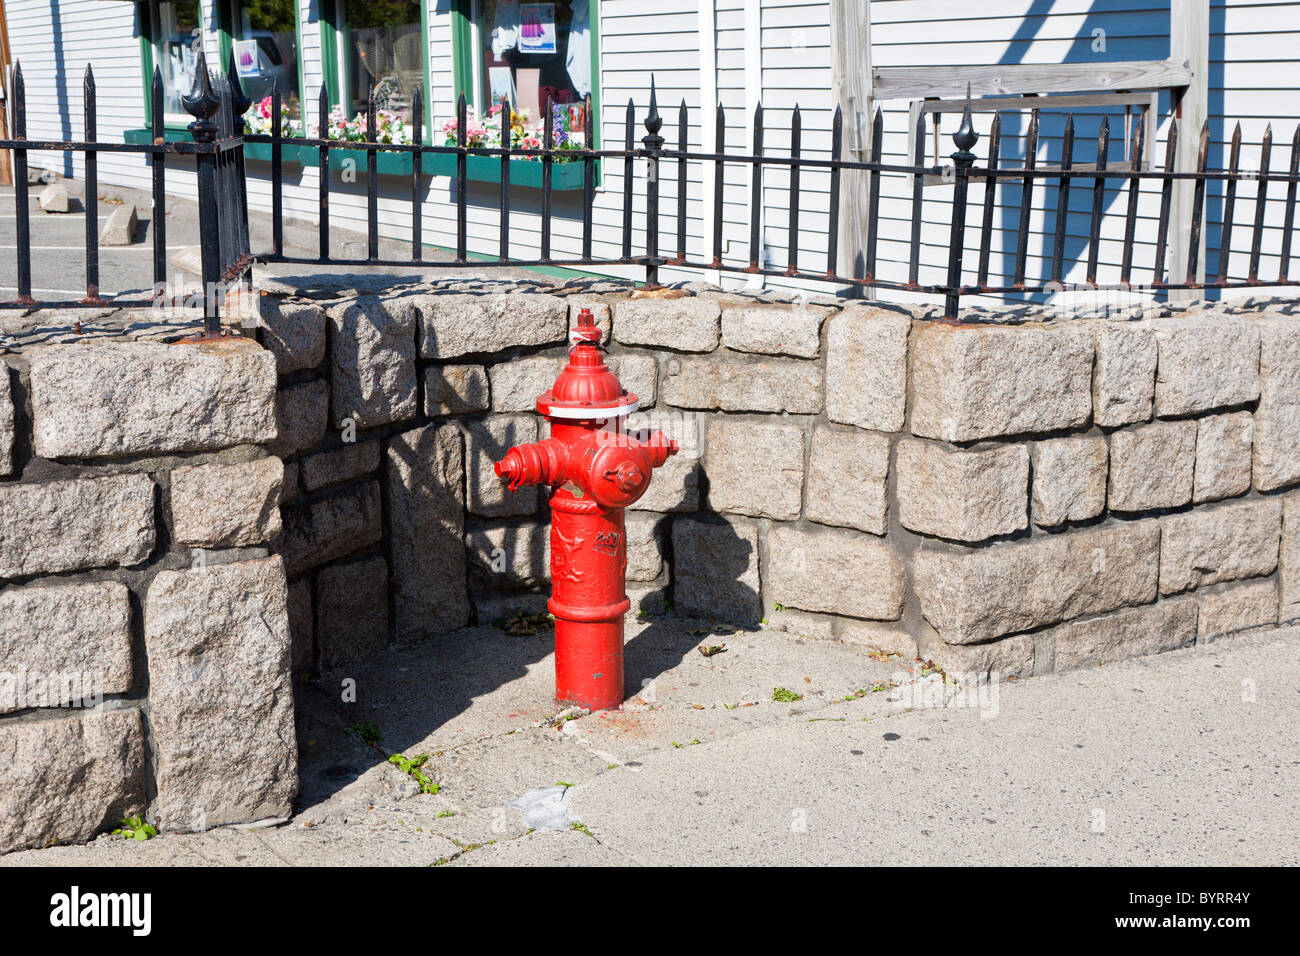 Cutout in granite stone wall around a bright red fire hydrant on Main Street in Bar Harbor, Maine - Stock Image